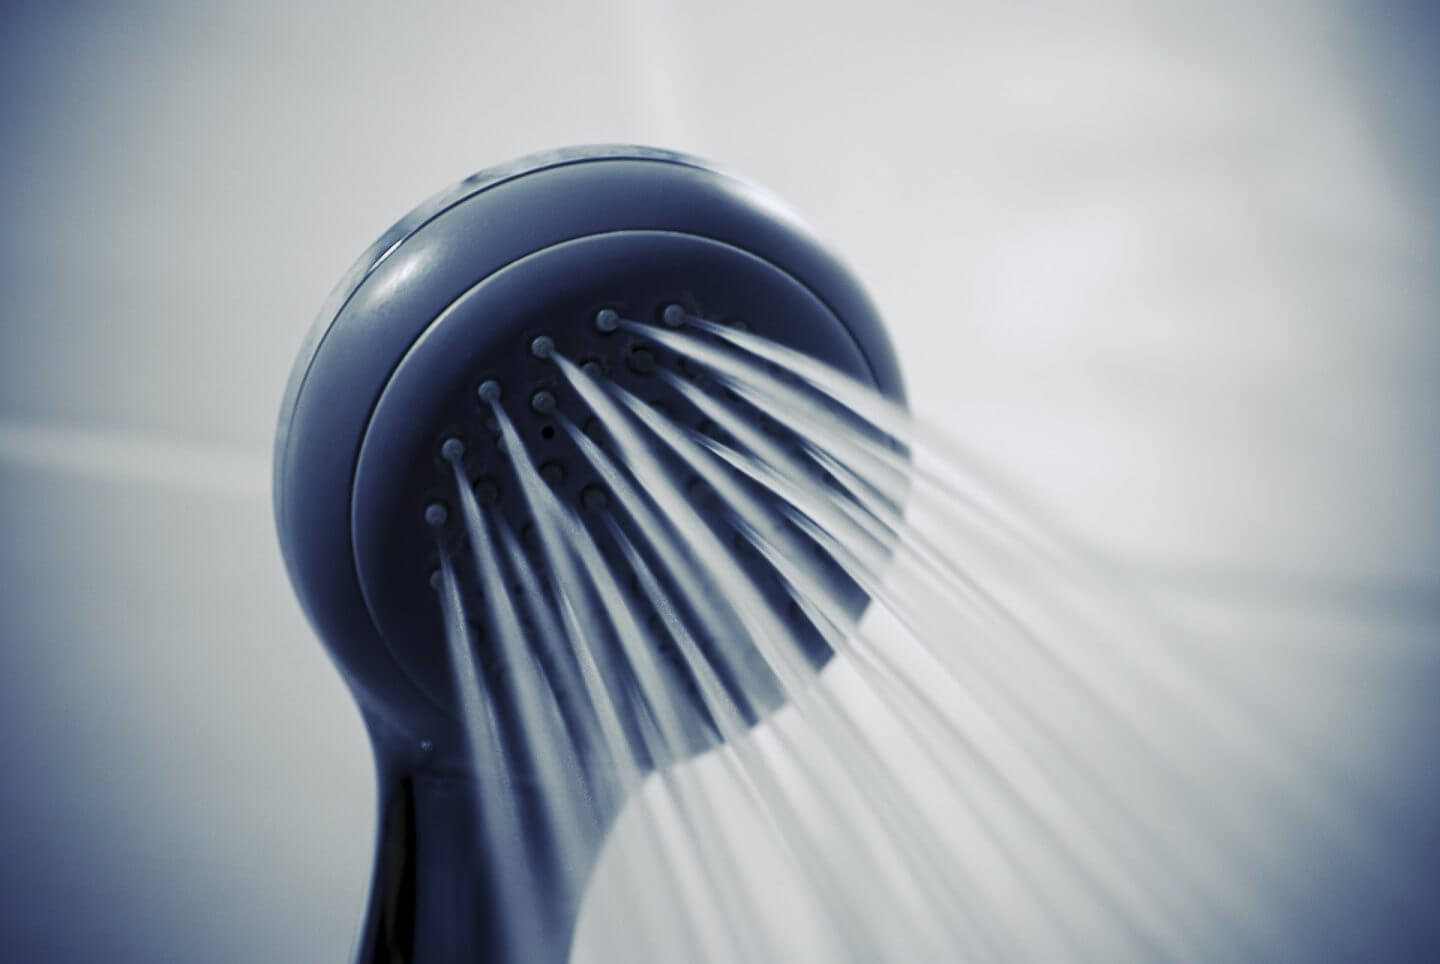 Redecorate your bathroom in January because you can use the gym showers instead. Picture of a shower head with water coming out.